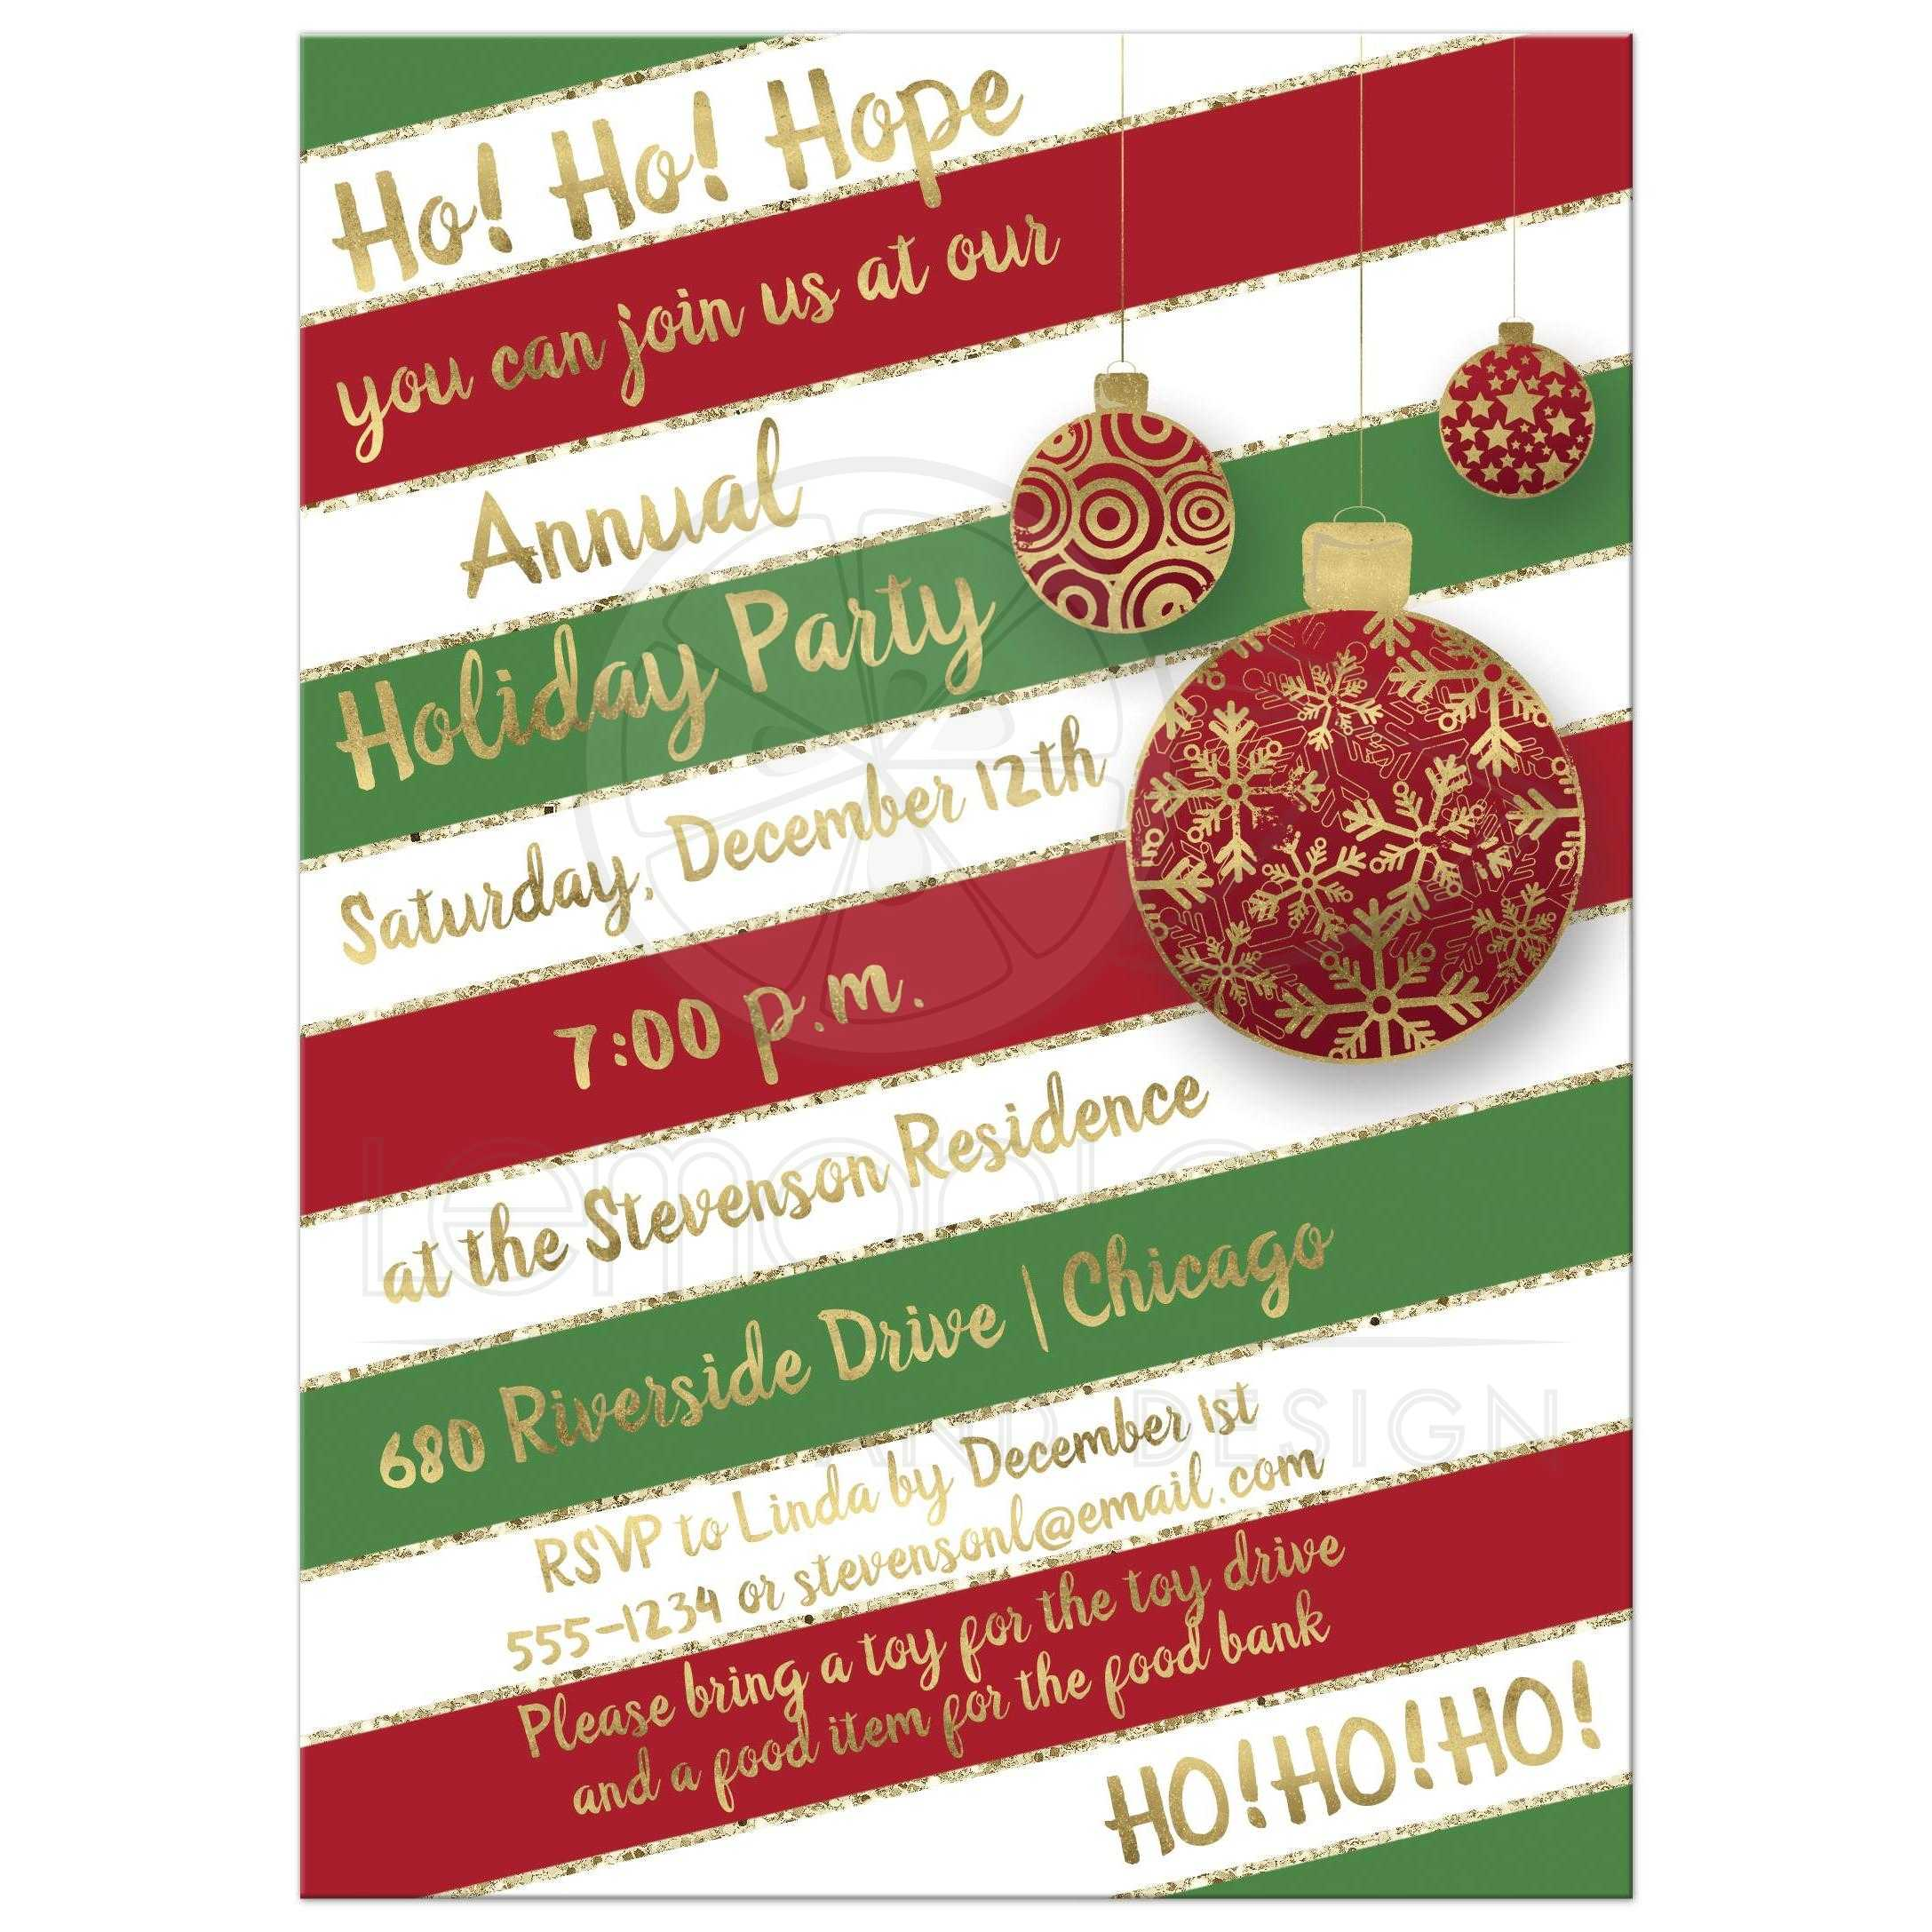 Holiday Party Invitation Red Green White Candy Cane Stripes Hanging Gold Ornaments